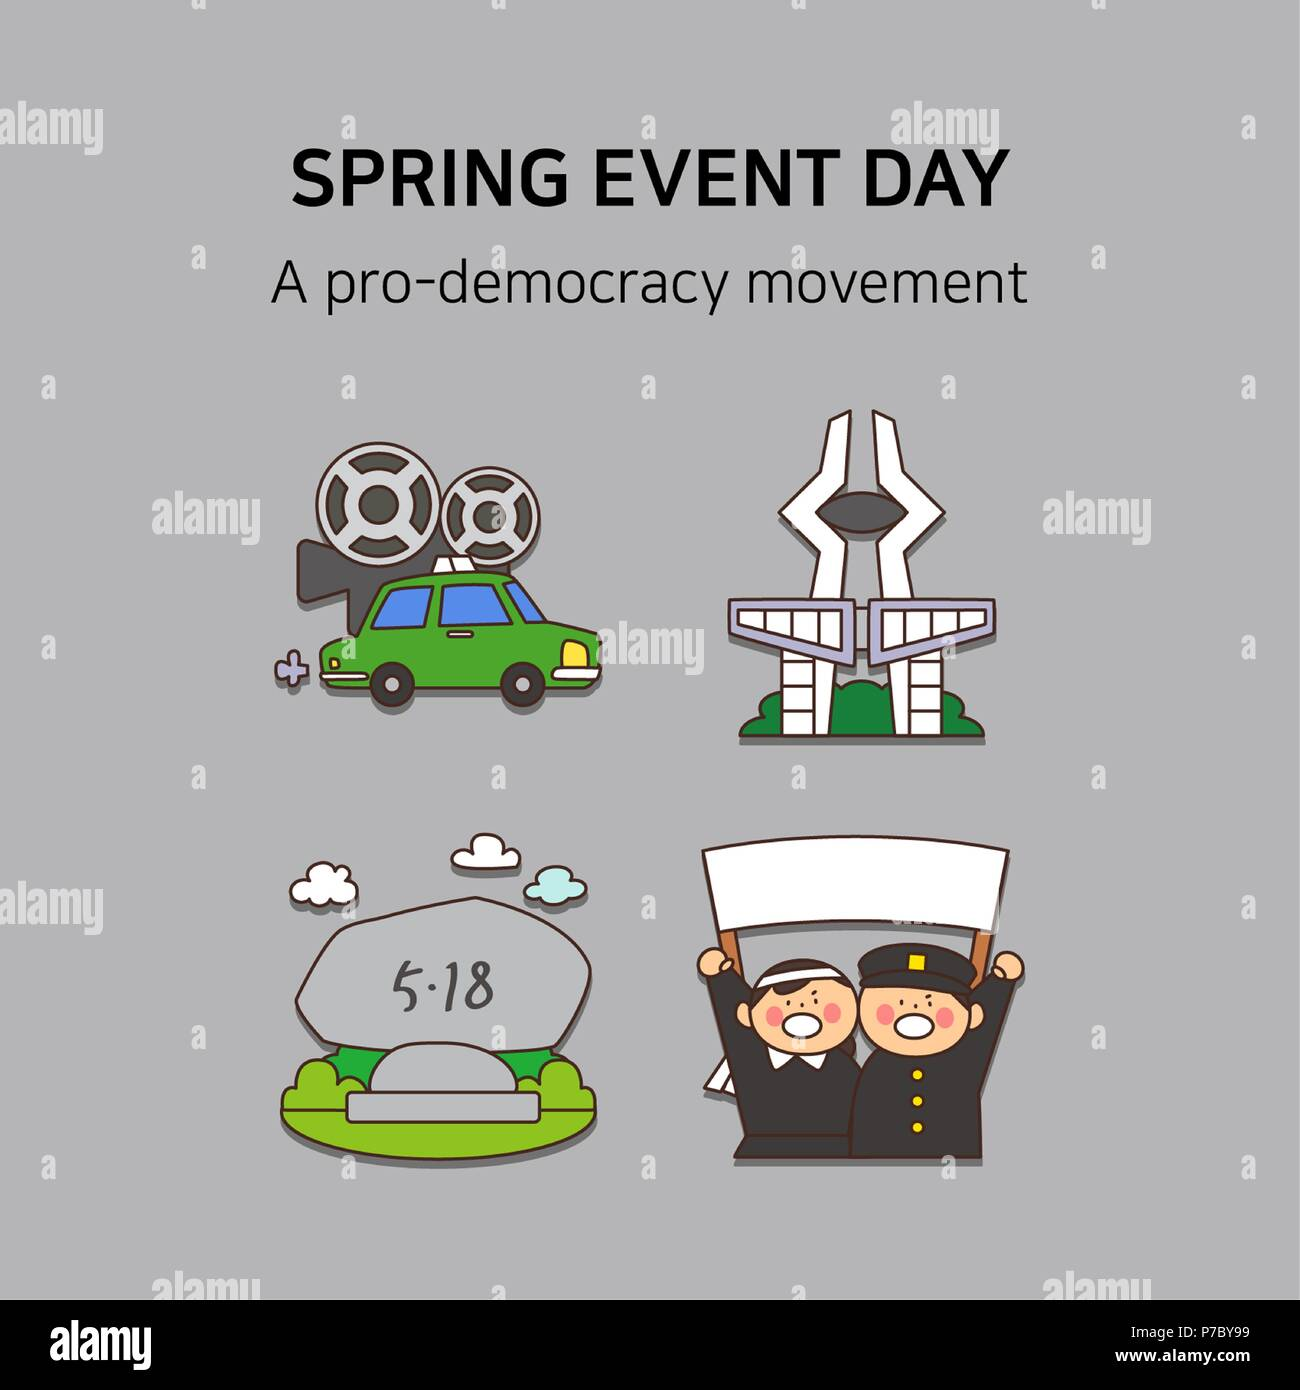 Vector - Spring event day icon set in colorful background 036 - Stock Vector